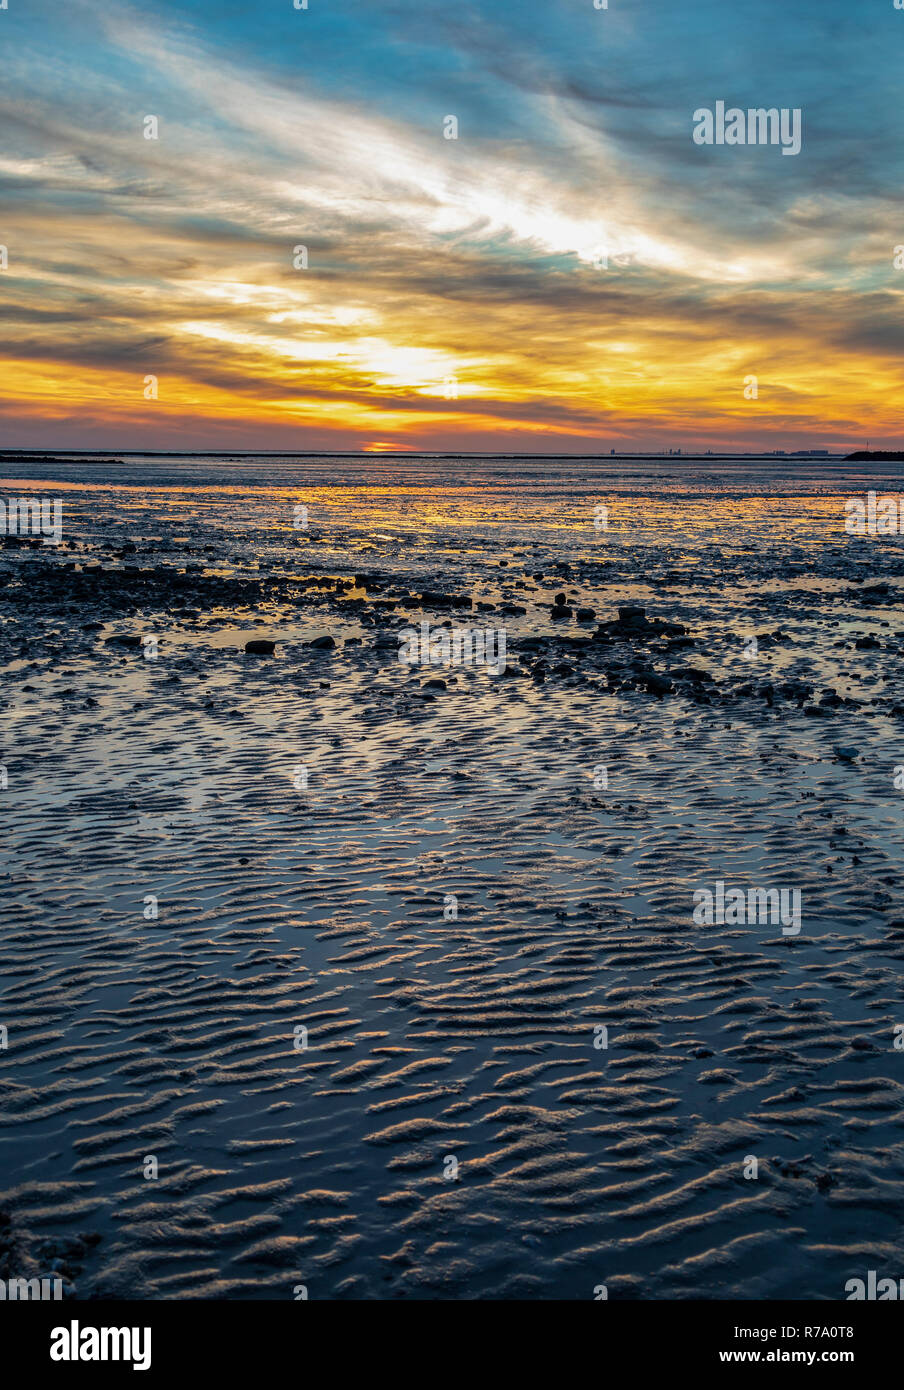 Sunset at low tide over the beach at Chatelaillon Plage near La Rochelle in the Charente-Maritime department of southwest France. Stock Photo